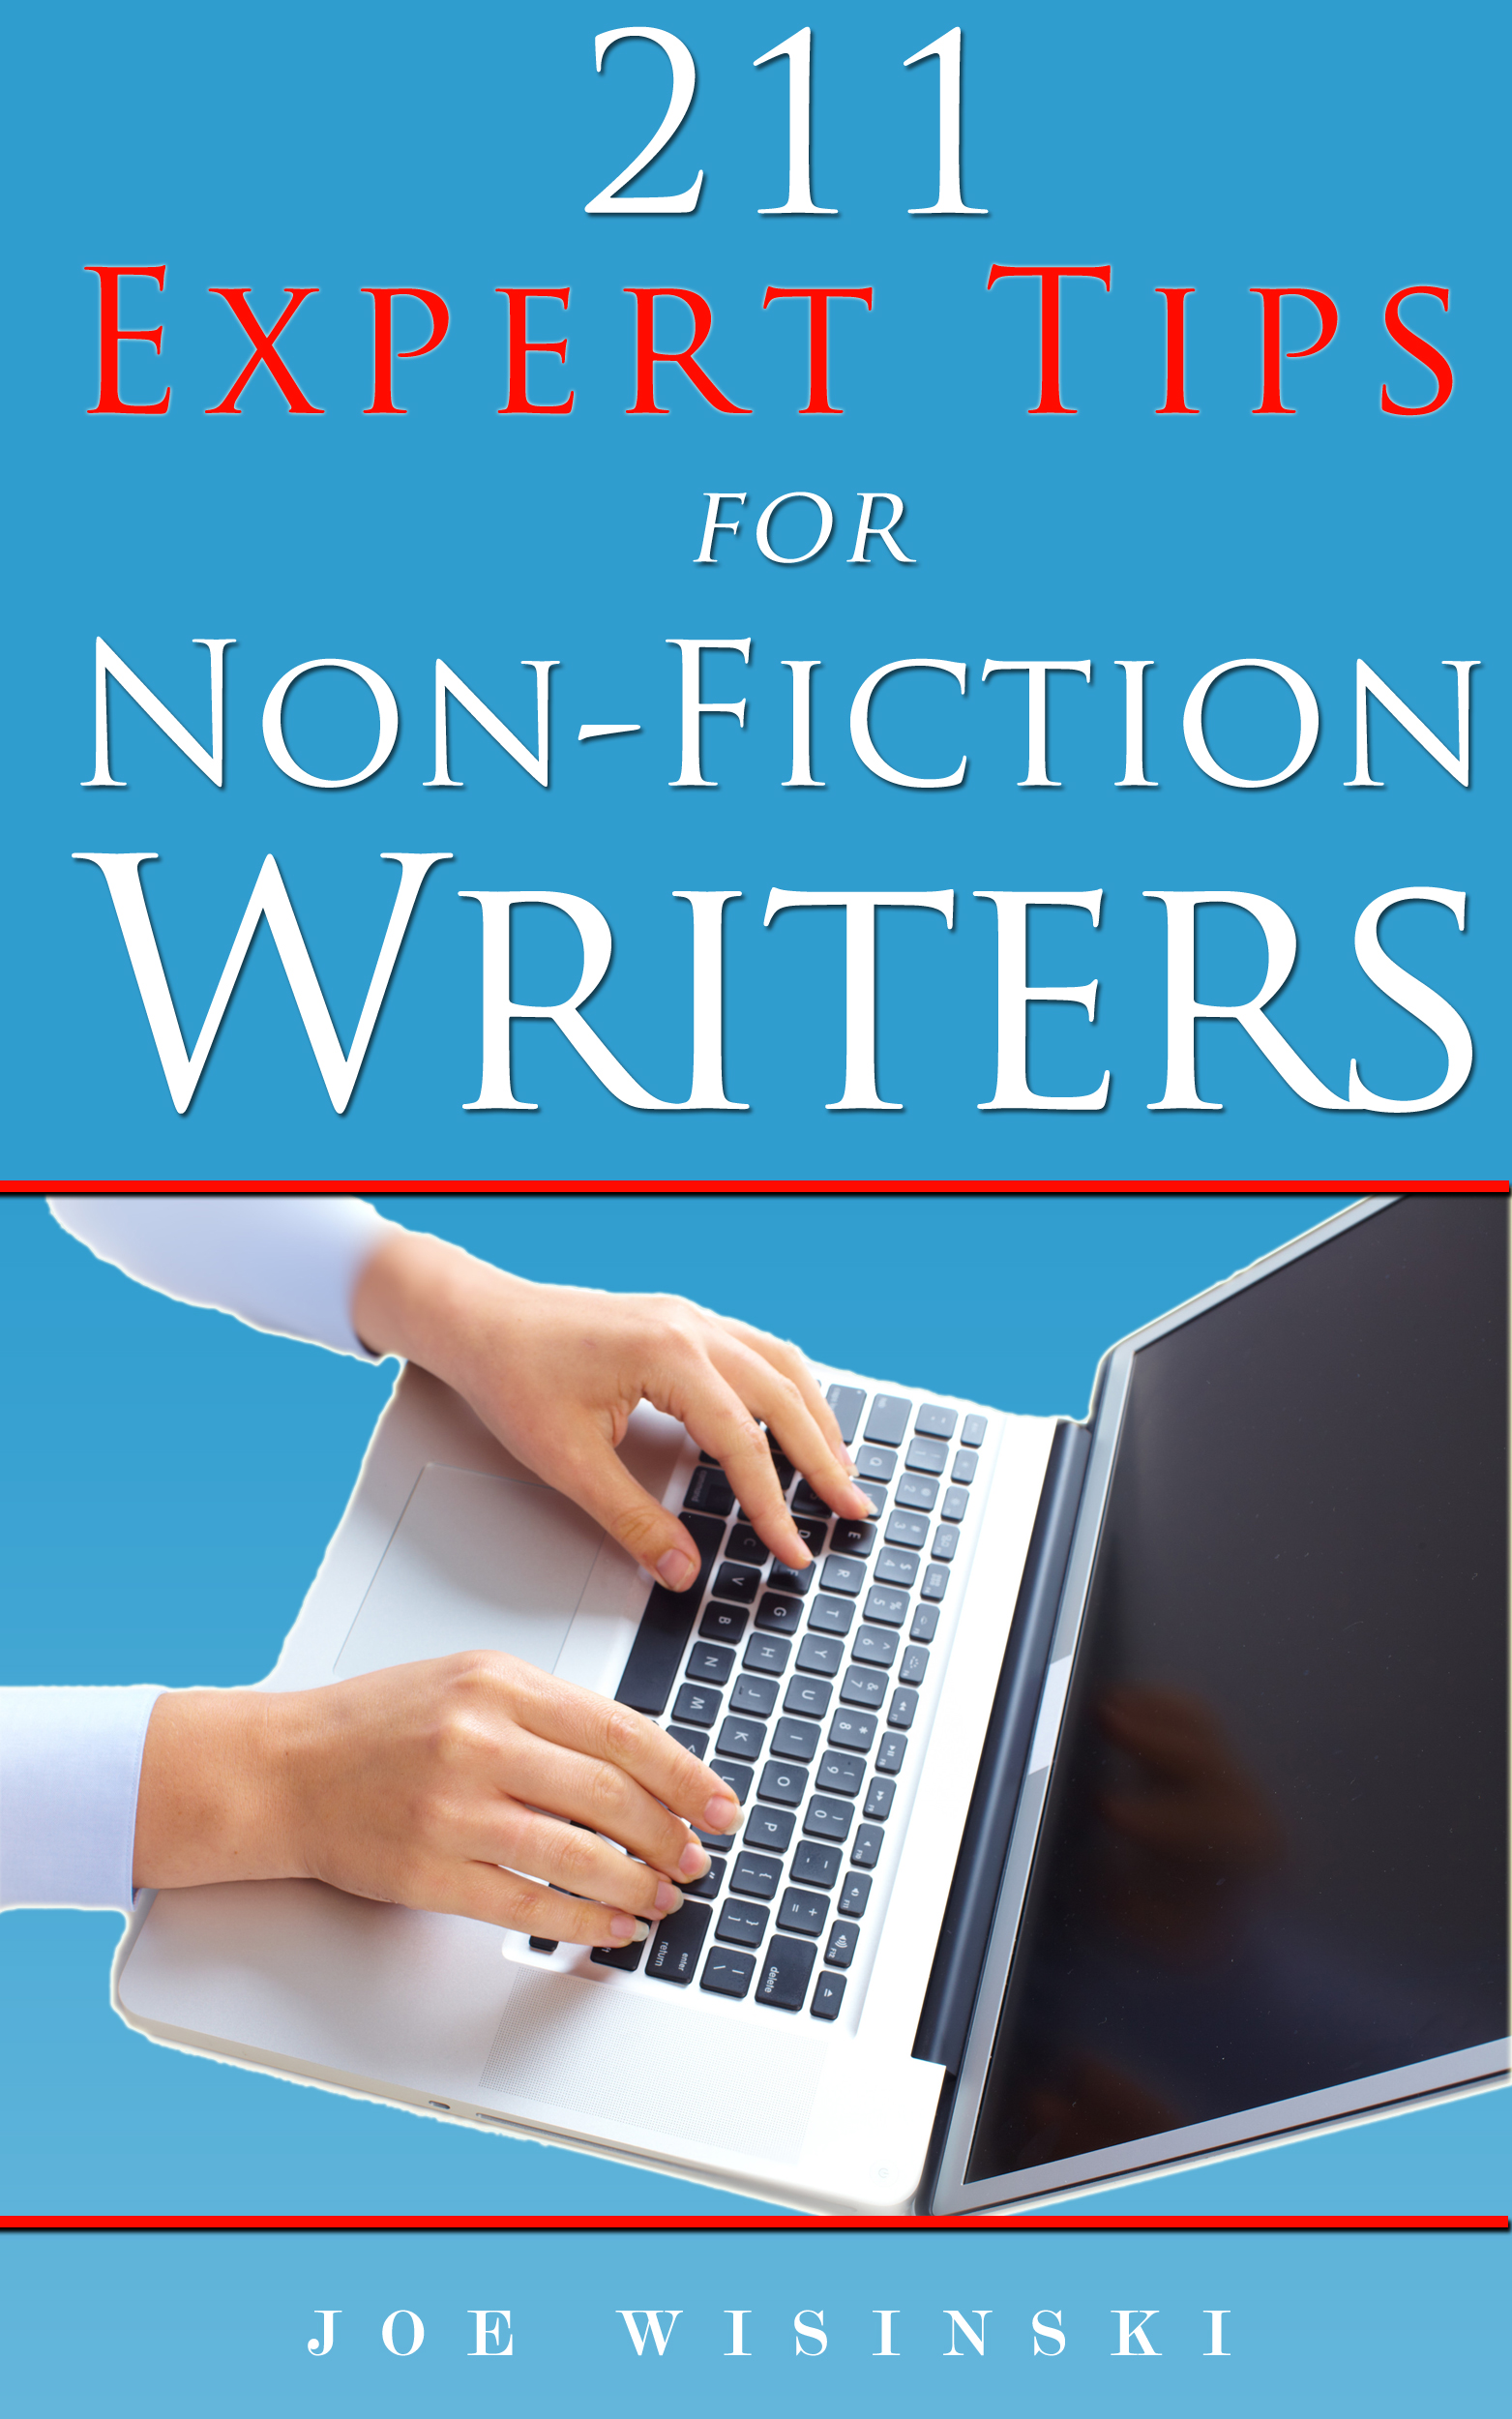 tips for writing a nonfiction book You want to use non-fiction book sales as the basis of your income, so you want to write multiple books in a niche and dominate that market some authors do make a full-time living writing these kinds of books.